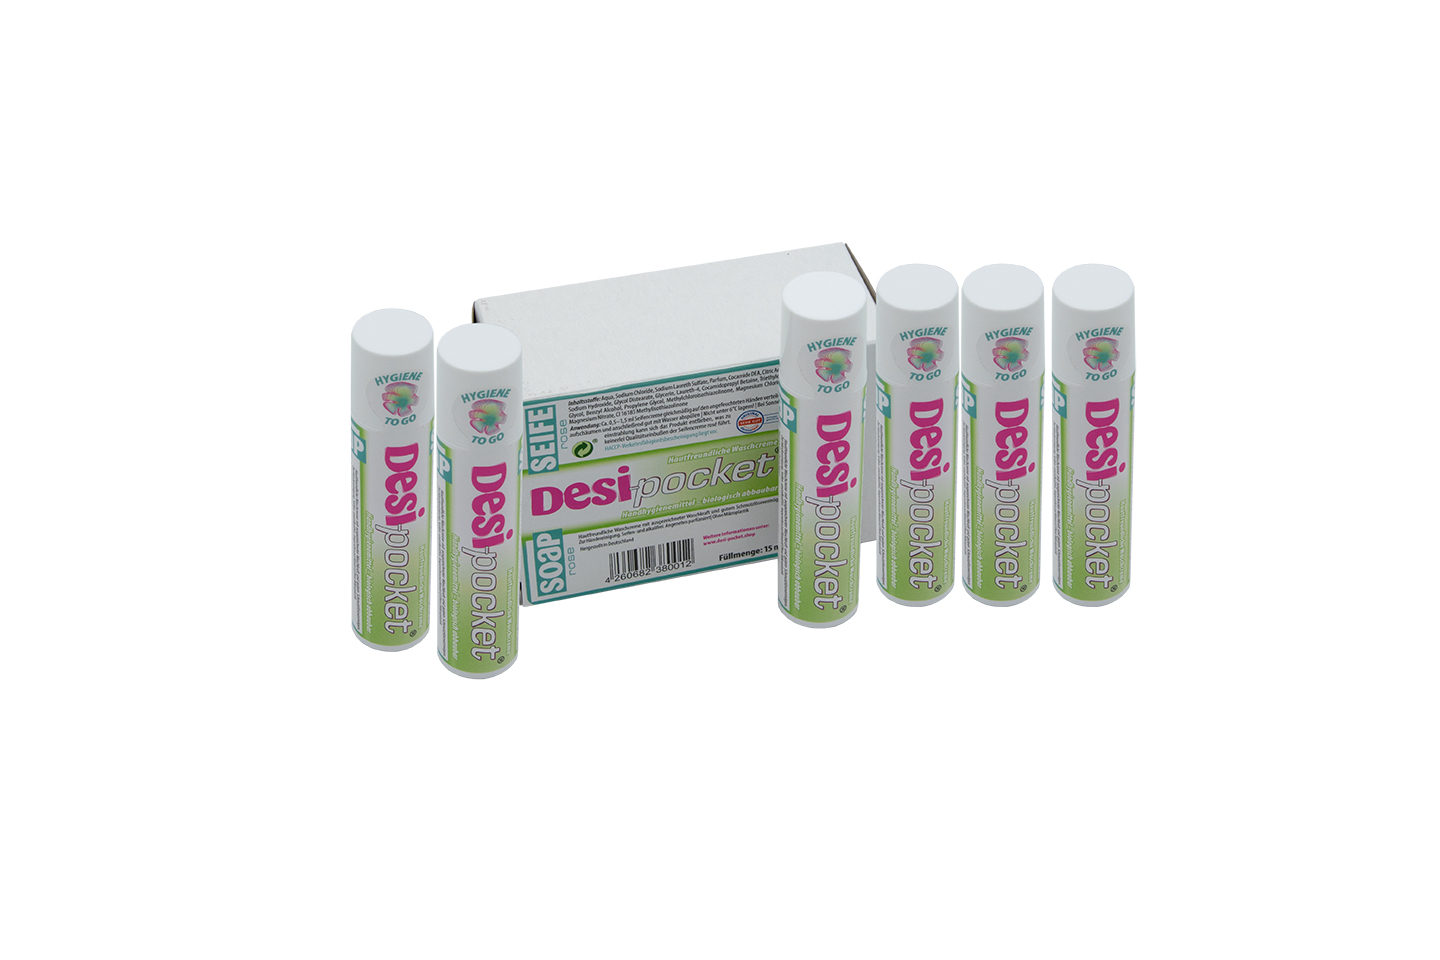 Desi-pocket Soap introduction package of 6 - washing cream - skin friendly